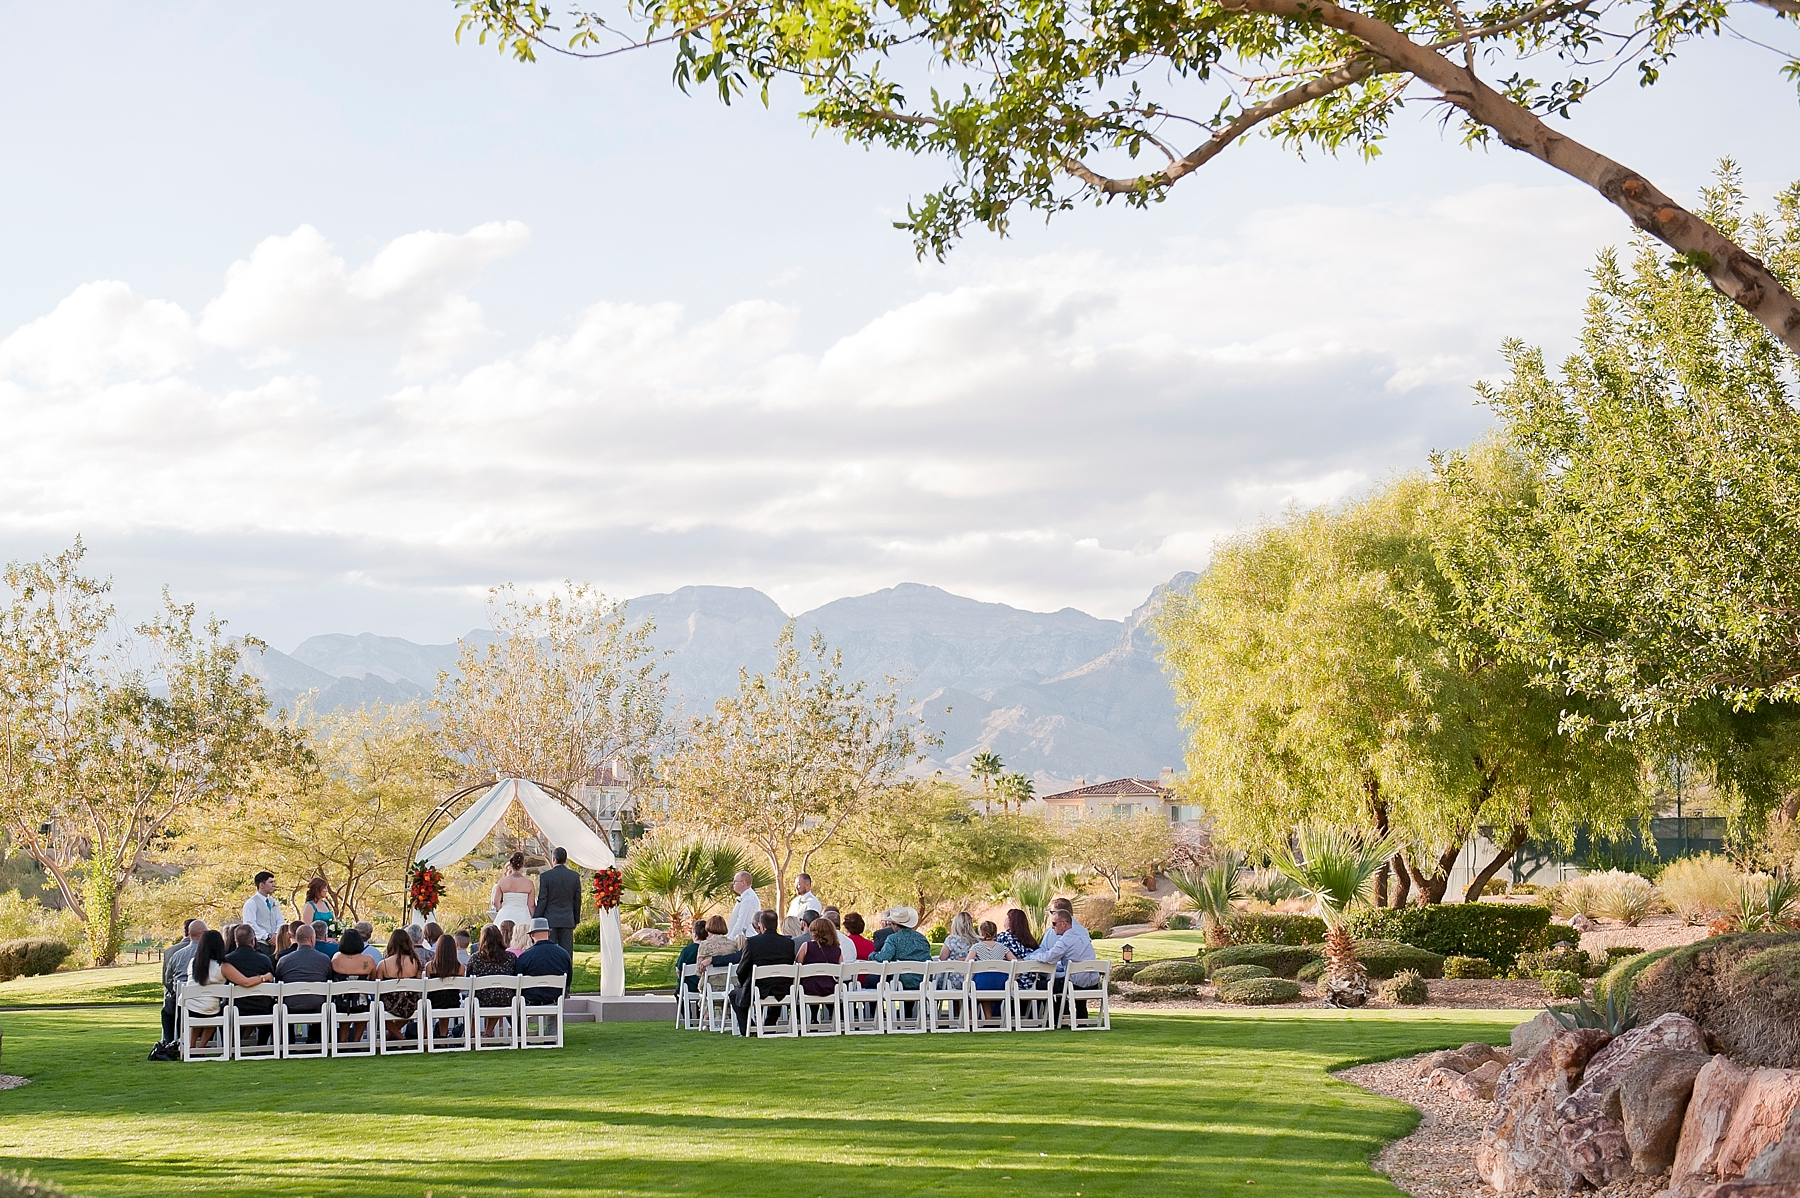 Venue:  Red Rock Country Club